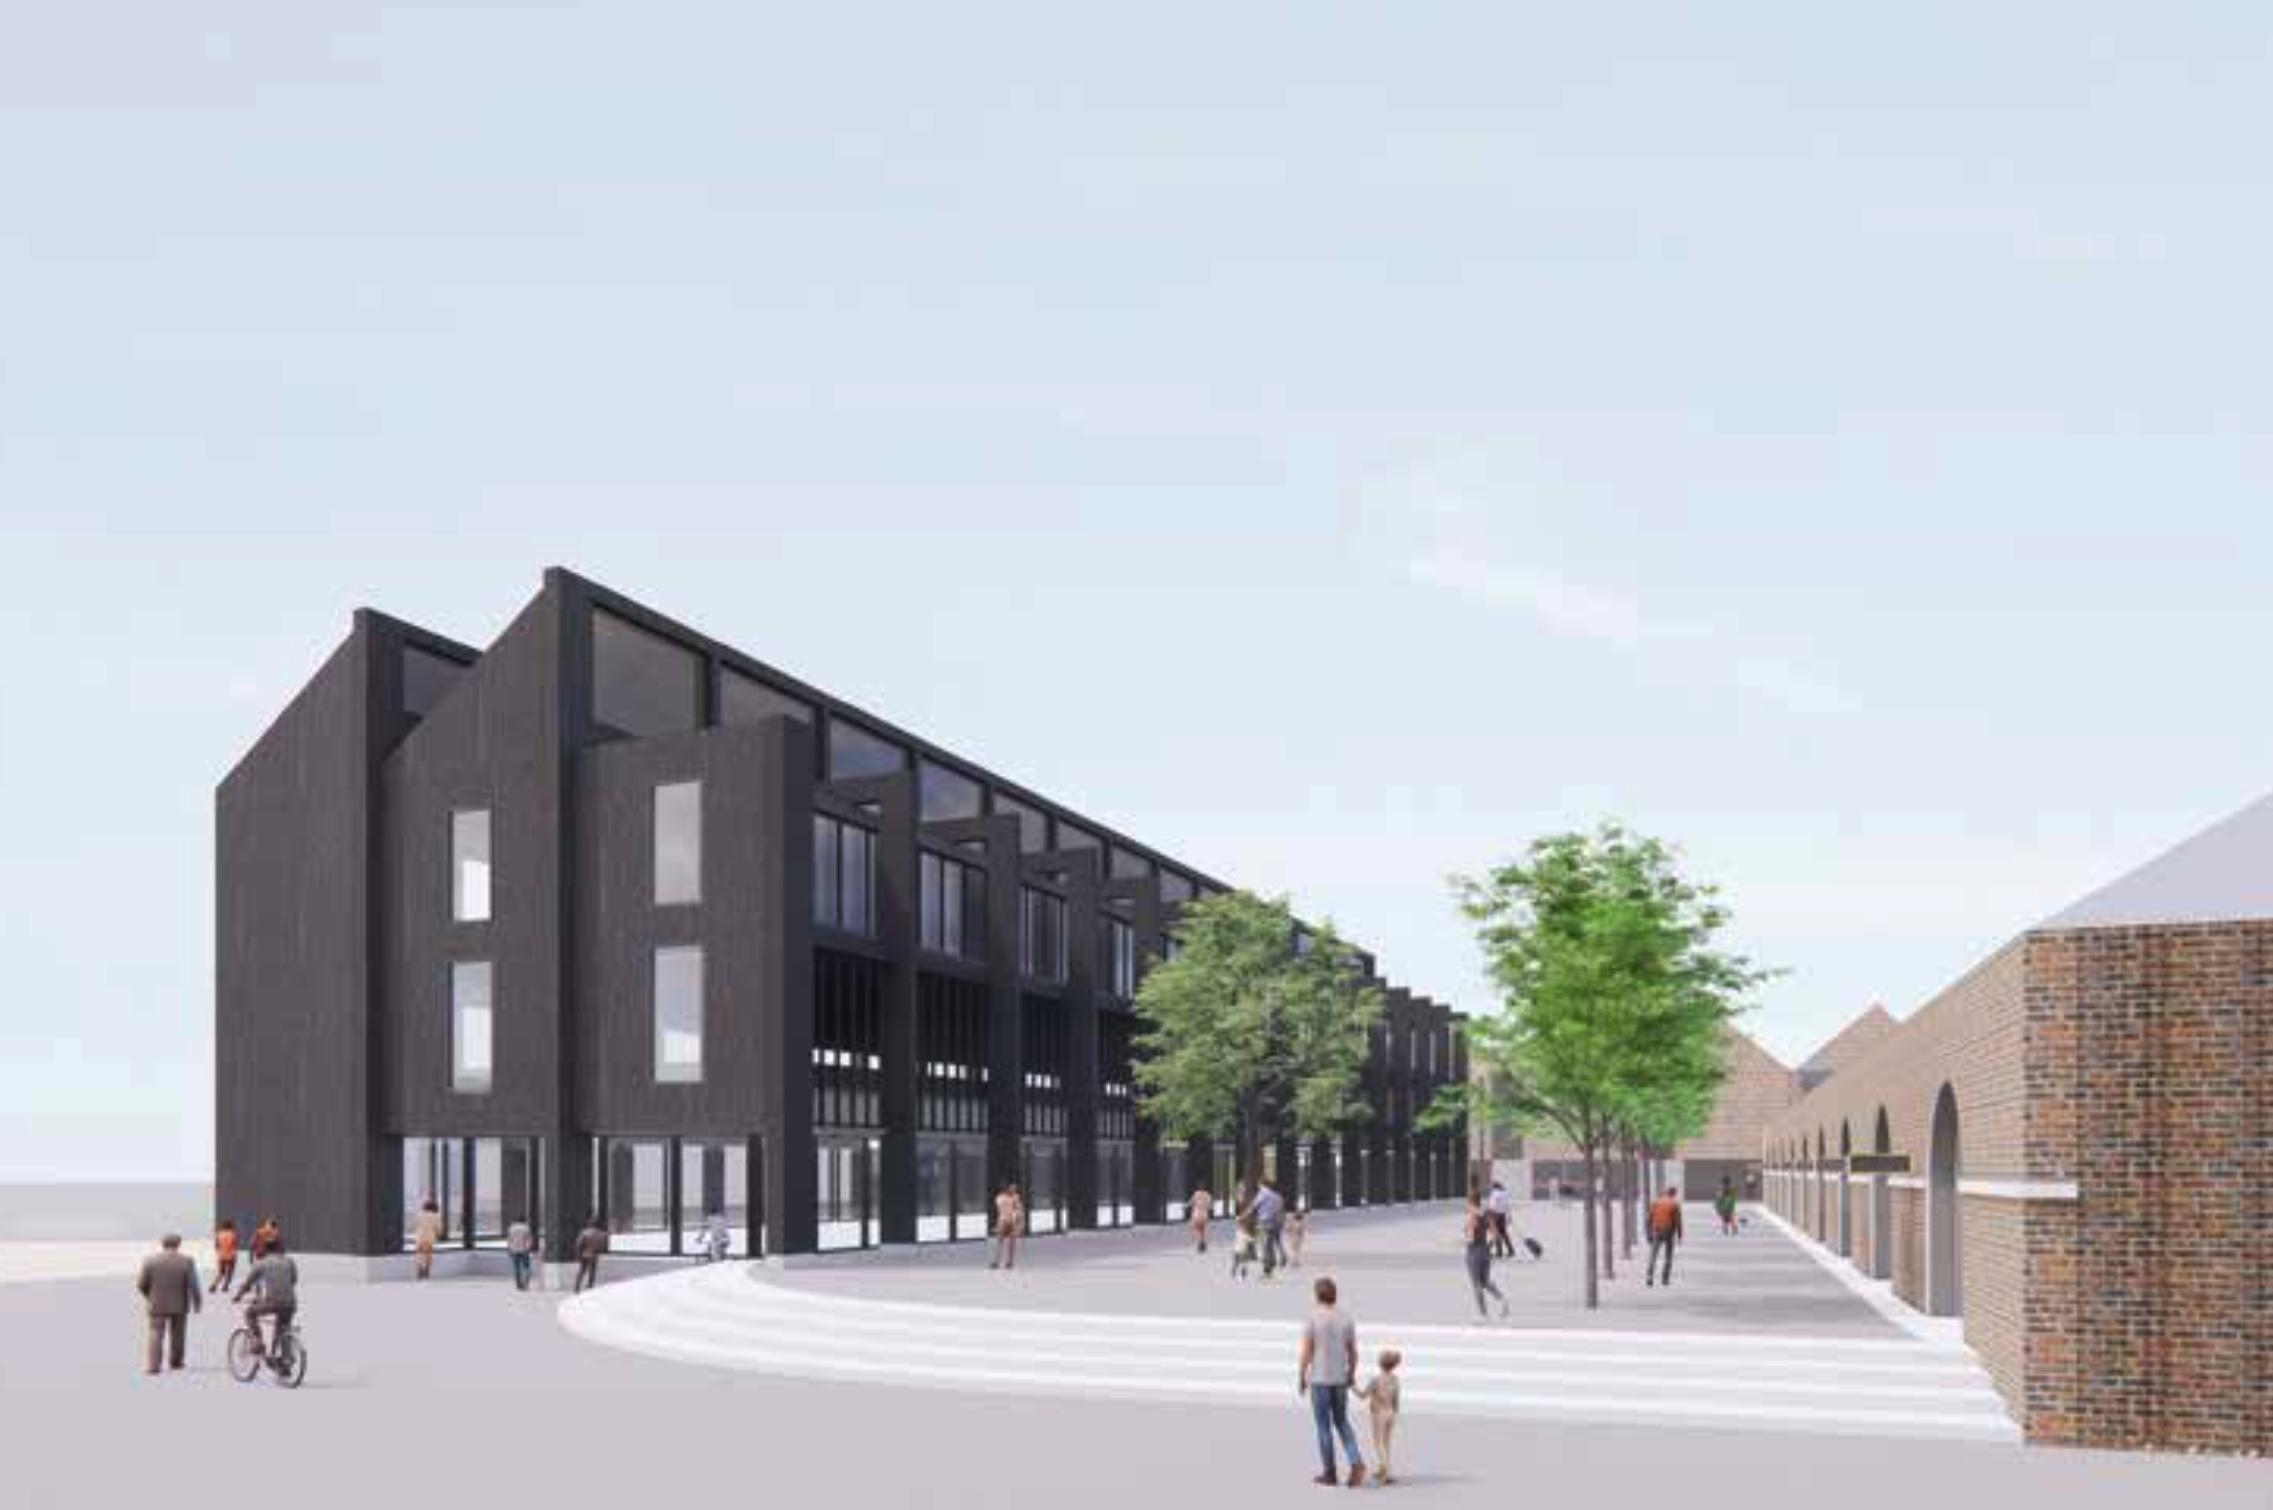 An artist's impression of the proposed use of the former Comet building site